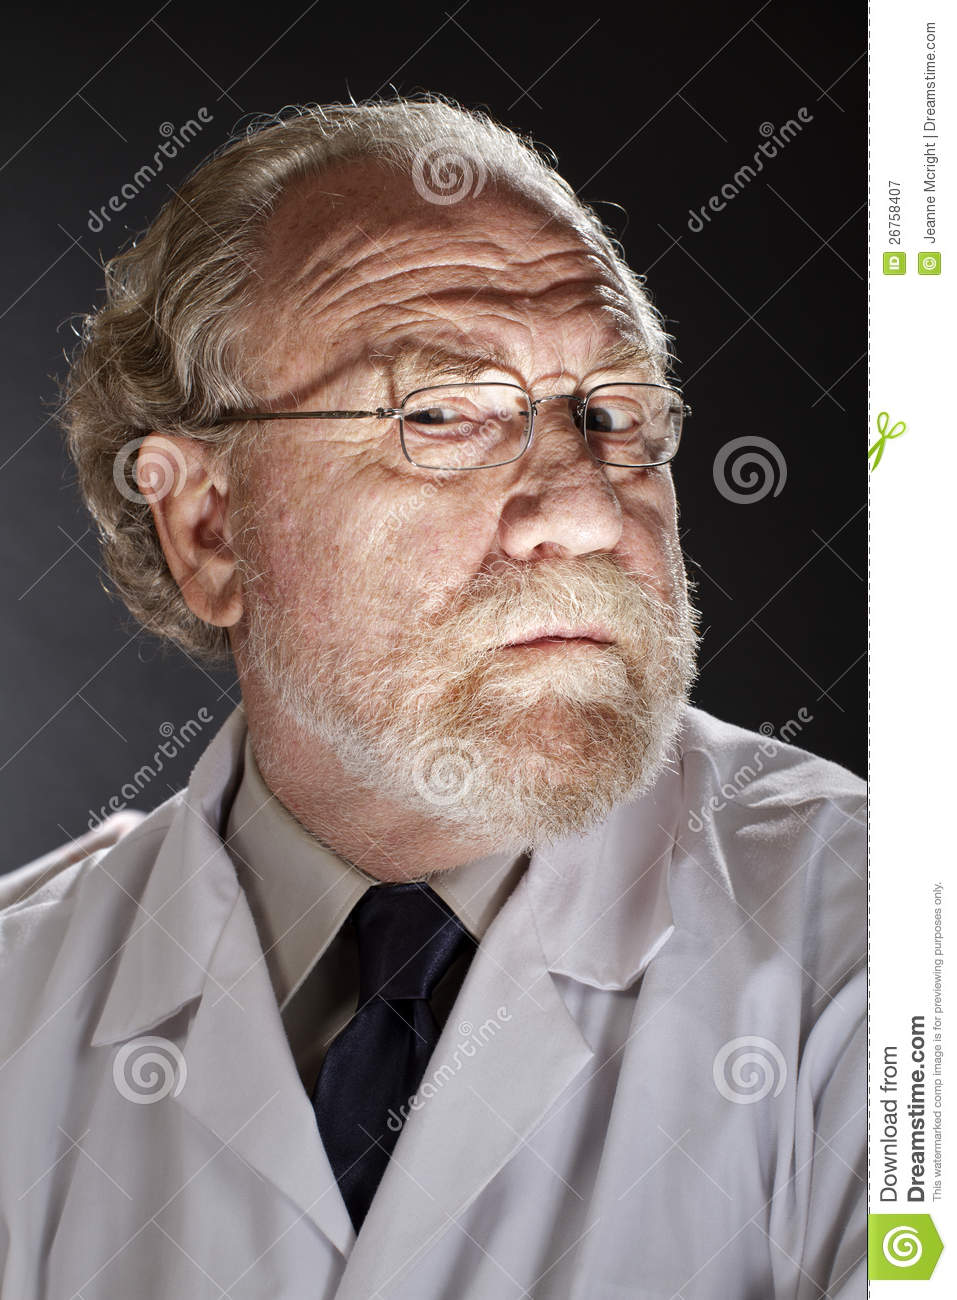 evil doctor with sinister expression royalty free stock